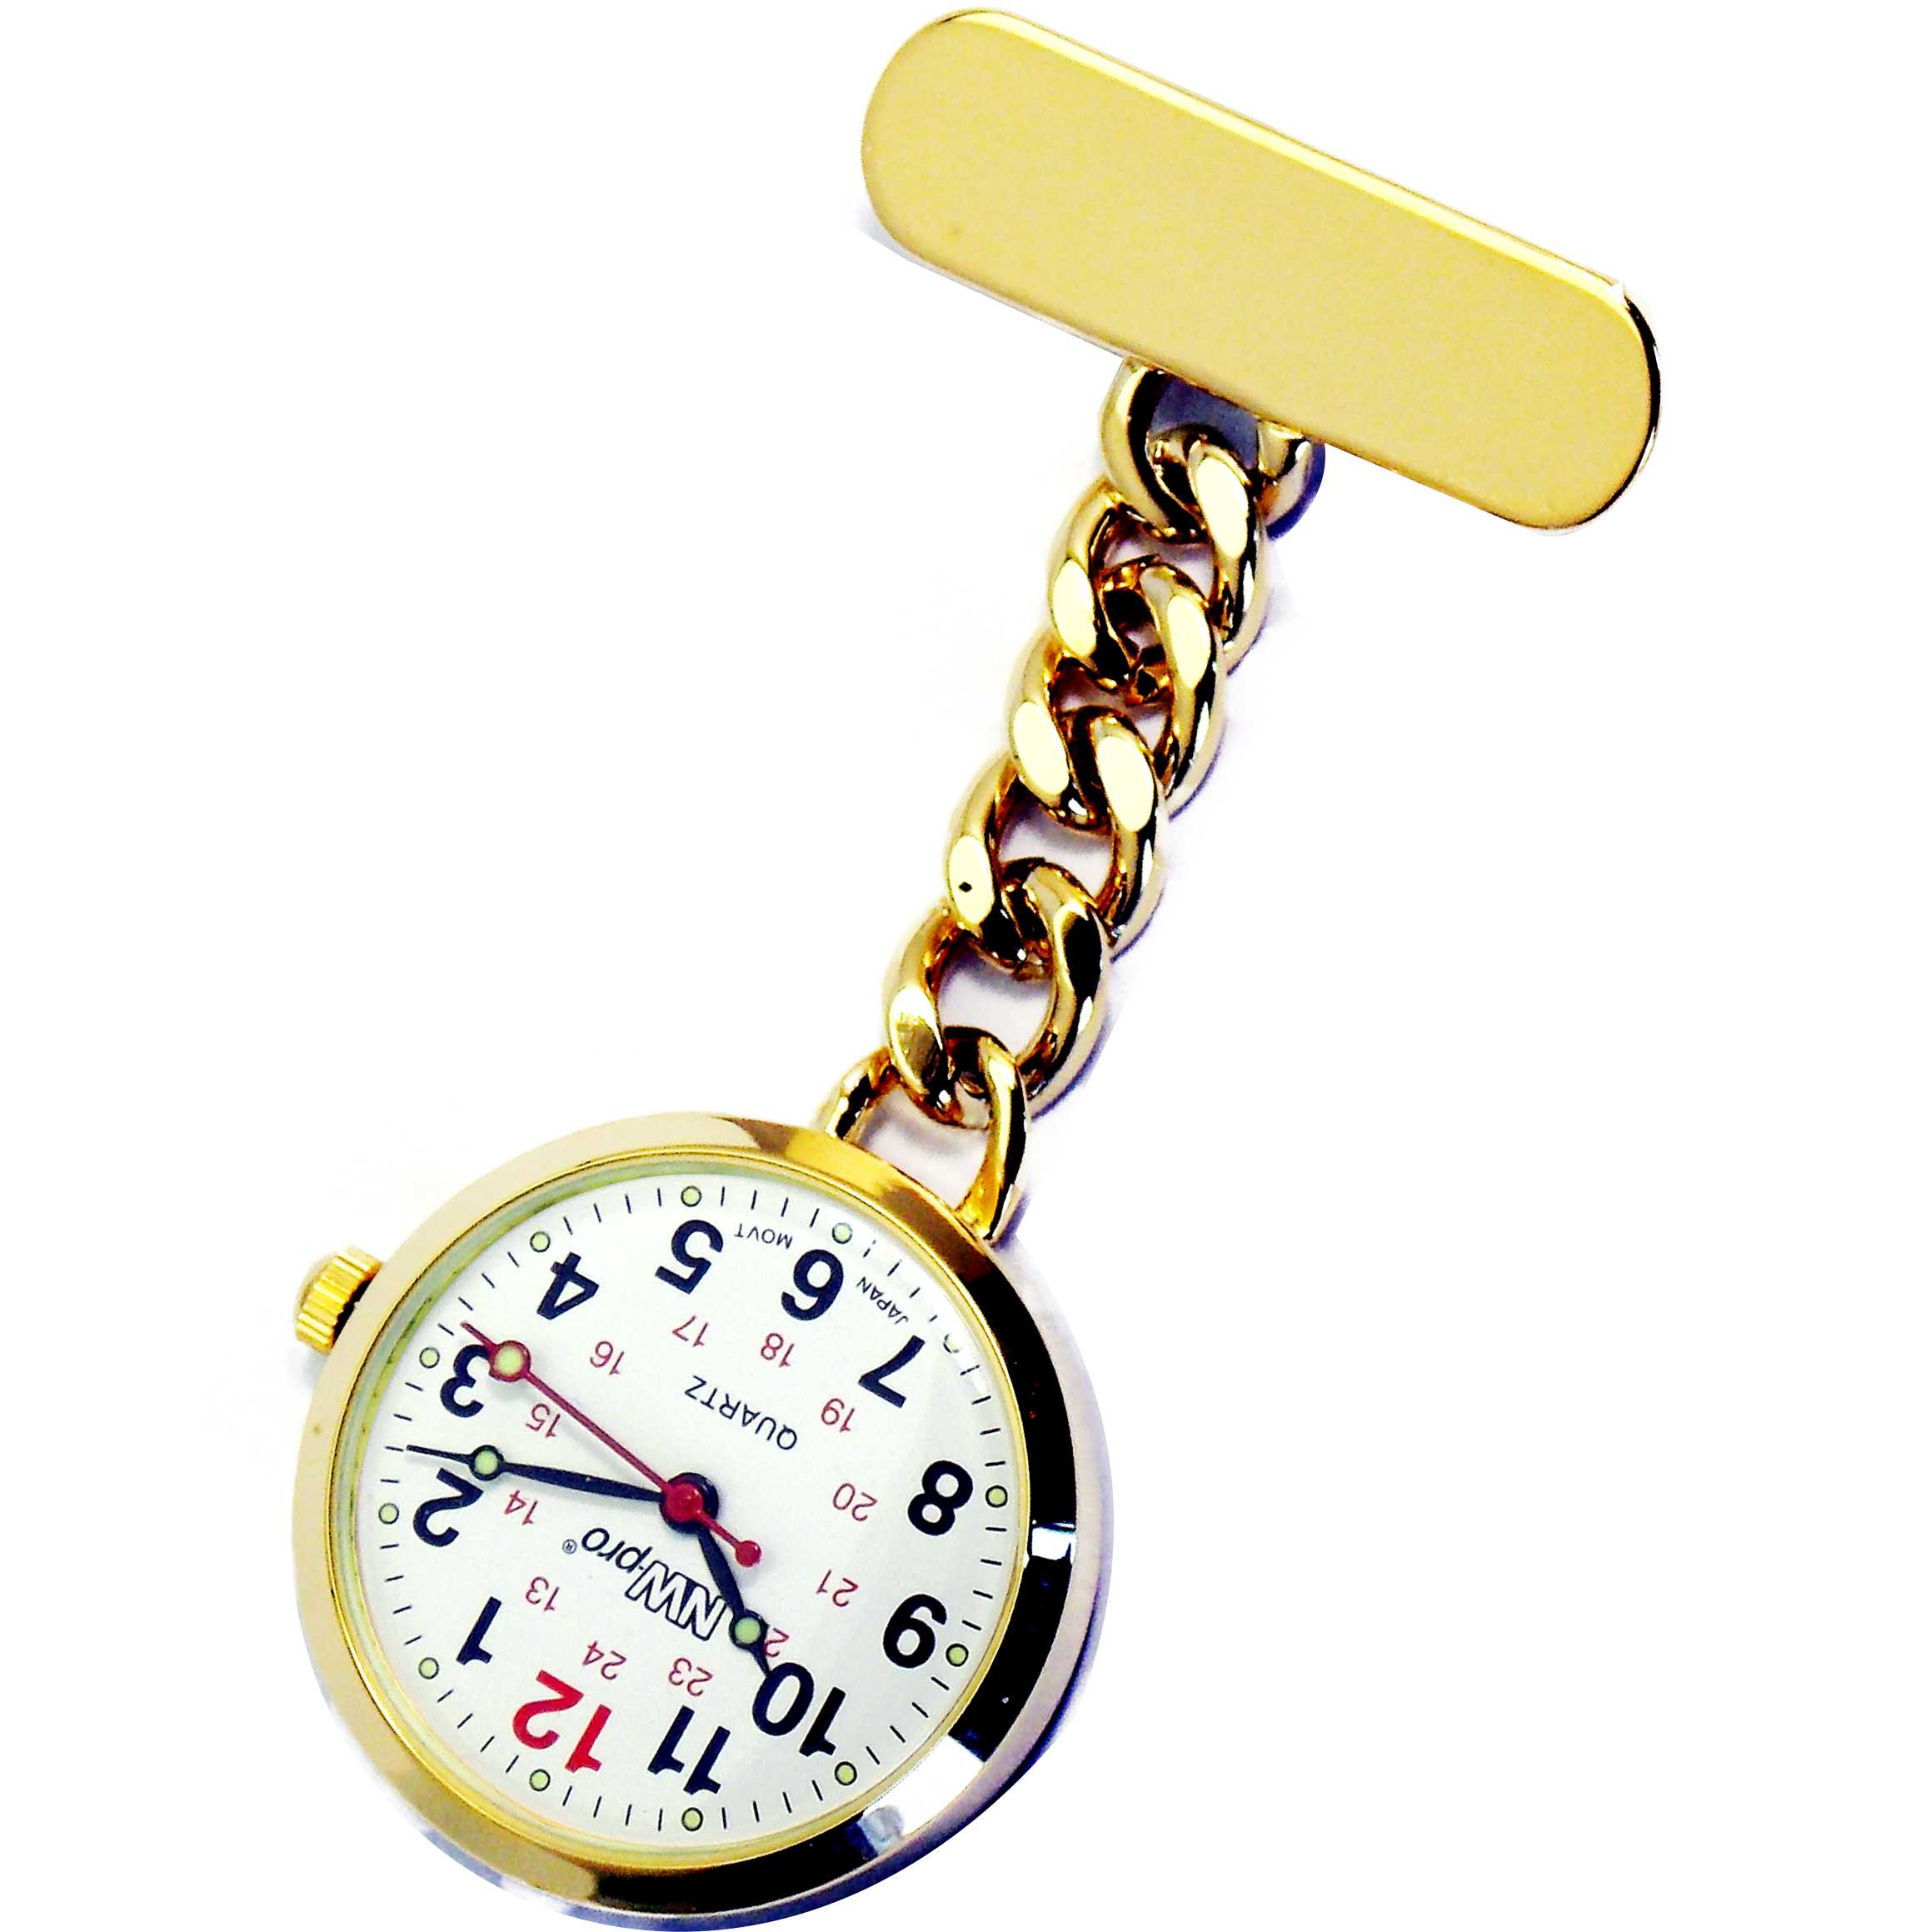 Nurses Pinned Watch - Nw-pro Chain - Gold - White